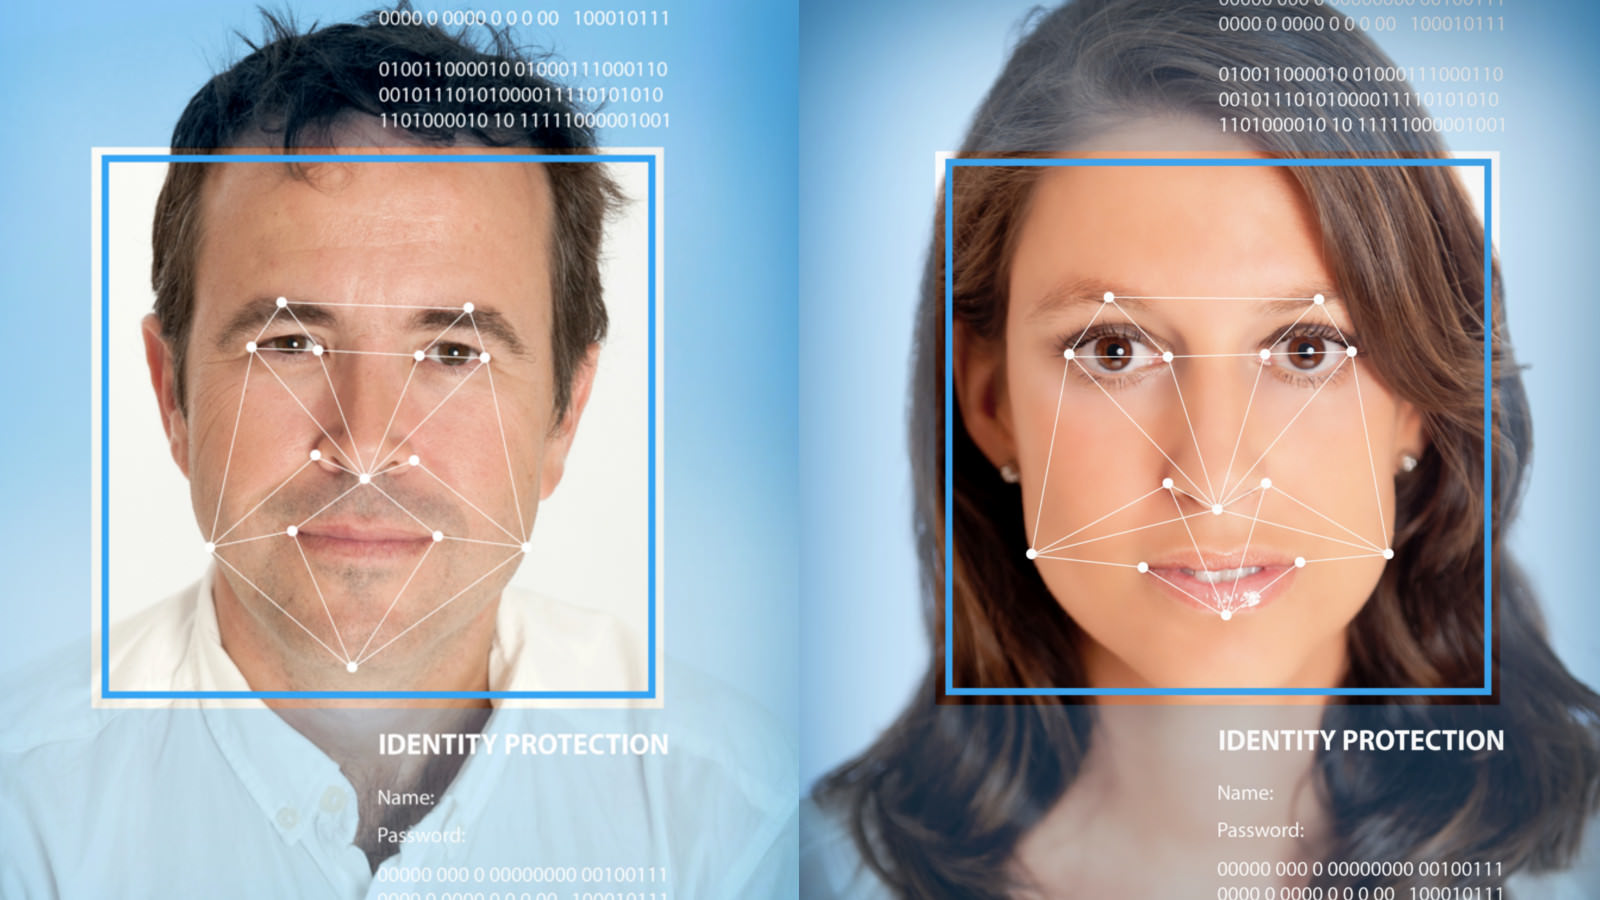 Facial recognition software windows